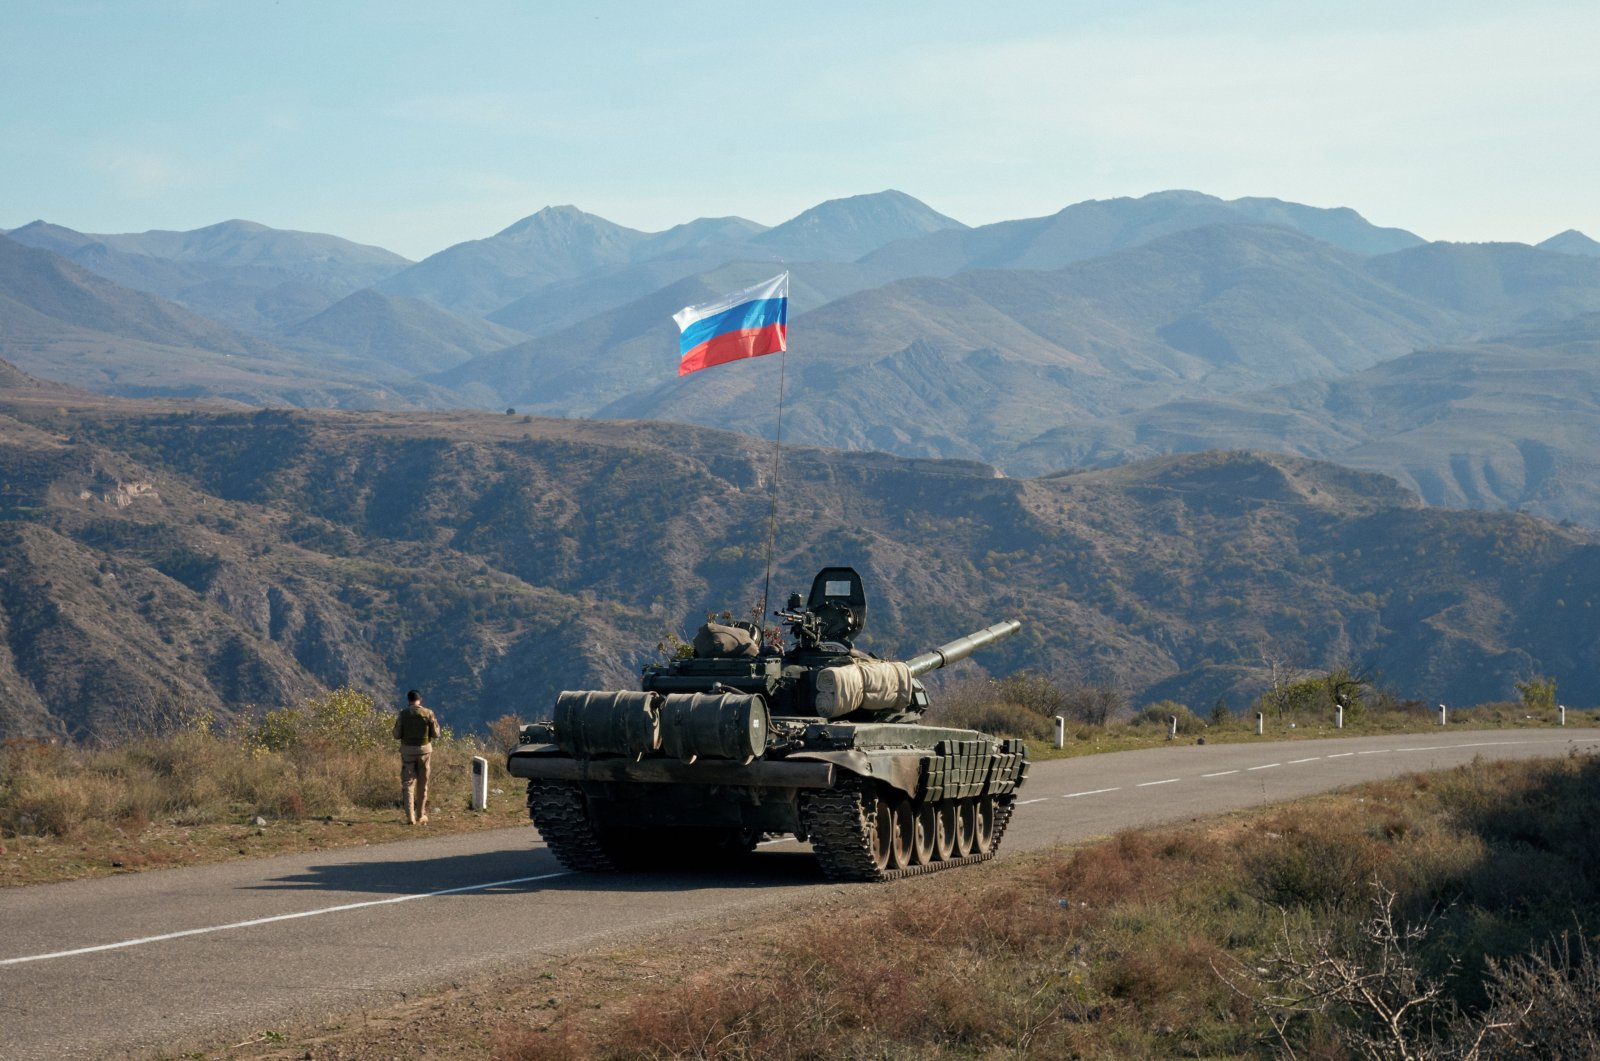 A service member of the Russian peacekeeping troops walks by a tank near the border with Armenia, in the region of Nagorno-Karabakh, Azerbaijan, Nov. 10, 2020. (Reuters Photo)